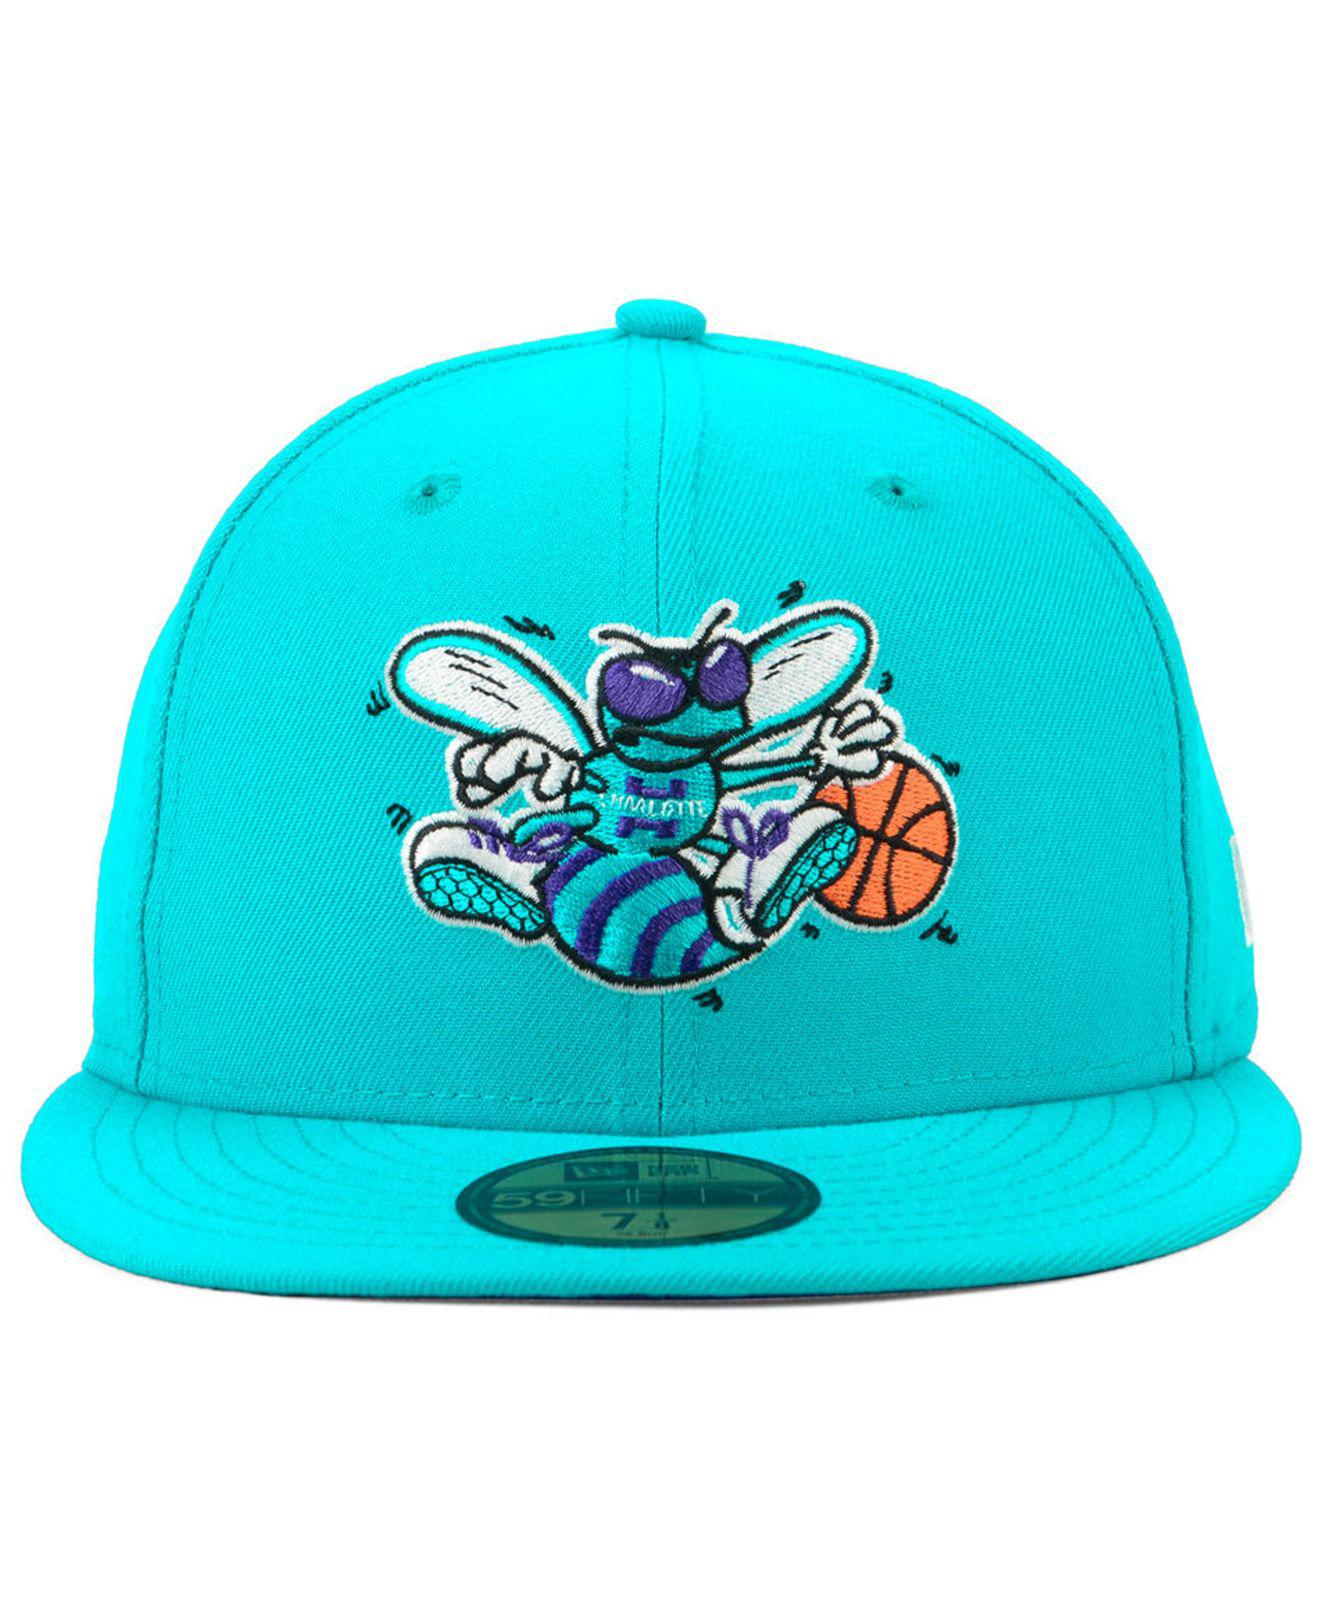 Lyst - KTZ Charlotte Hornets Hardwood Classic Nights 59fifty Fitted Cap in  Blue for Men 4ef35f460